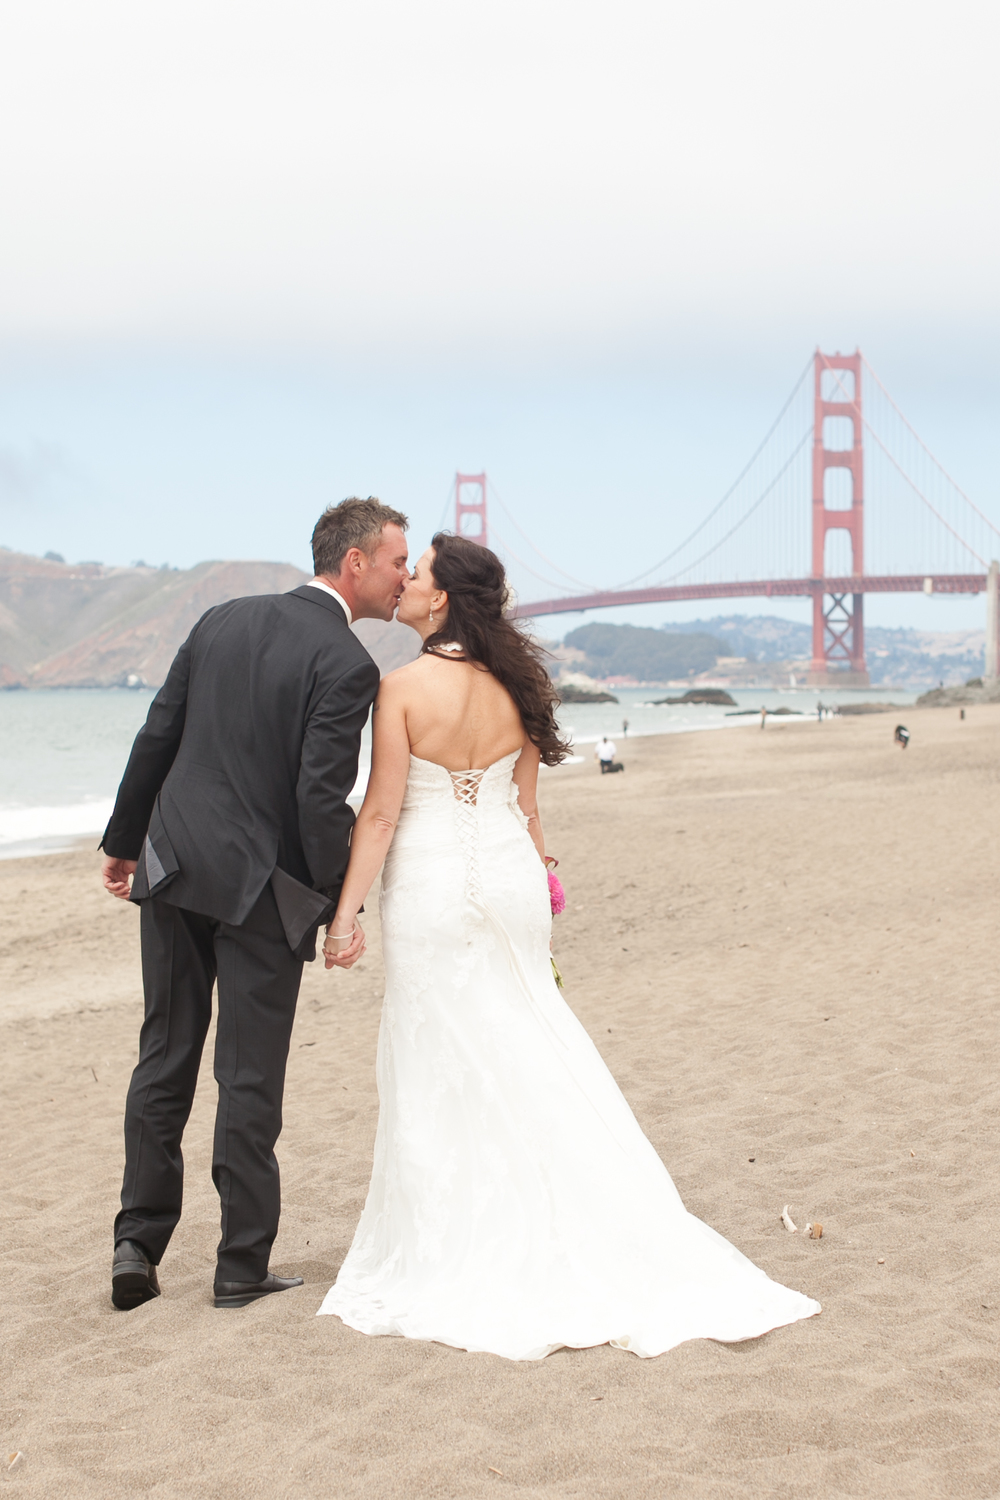 Baker Beach Elopement in San Francisco-Meo Baaklini077.jpg